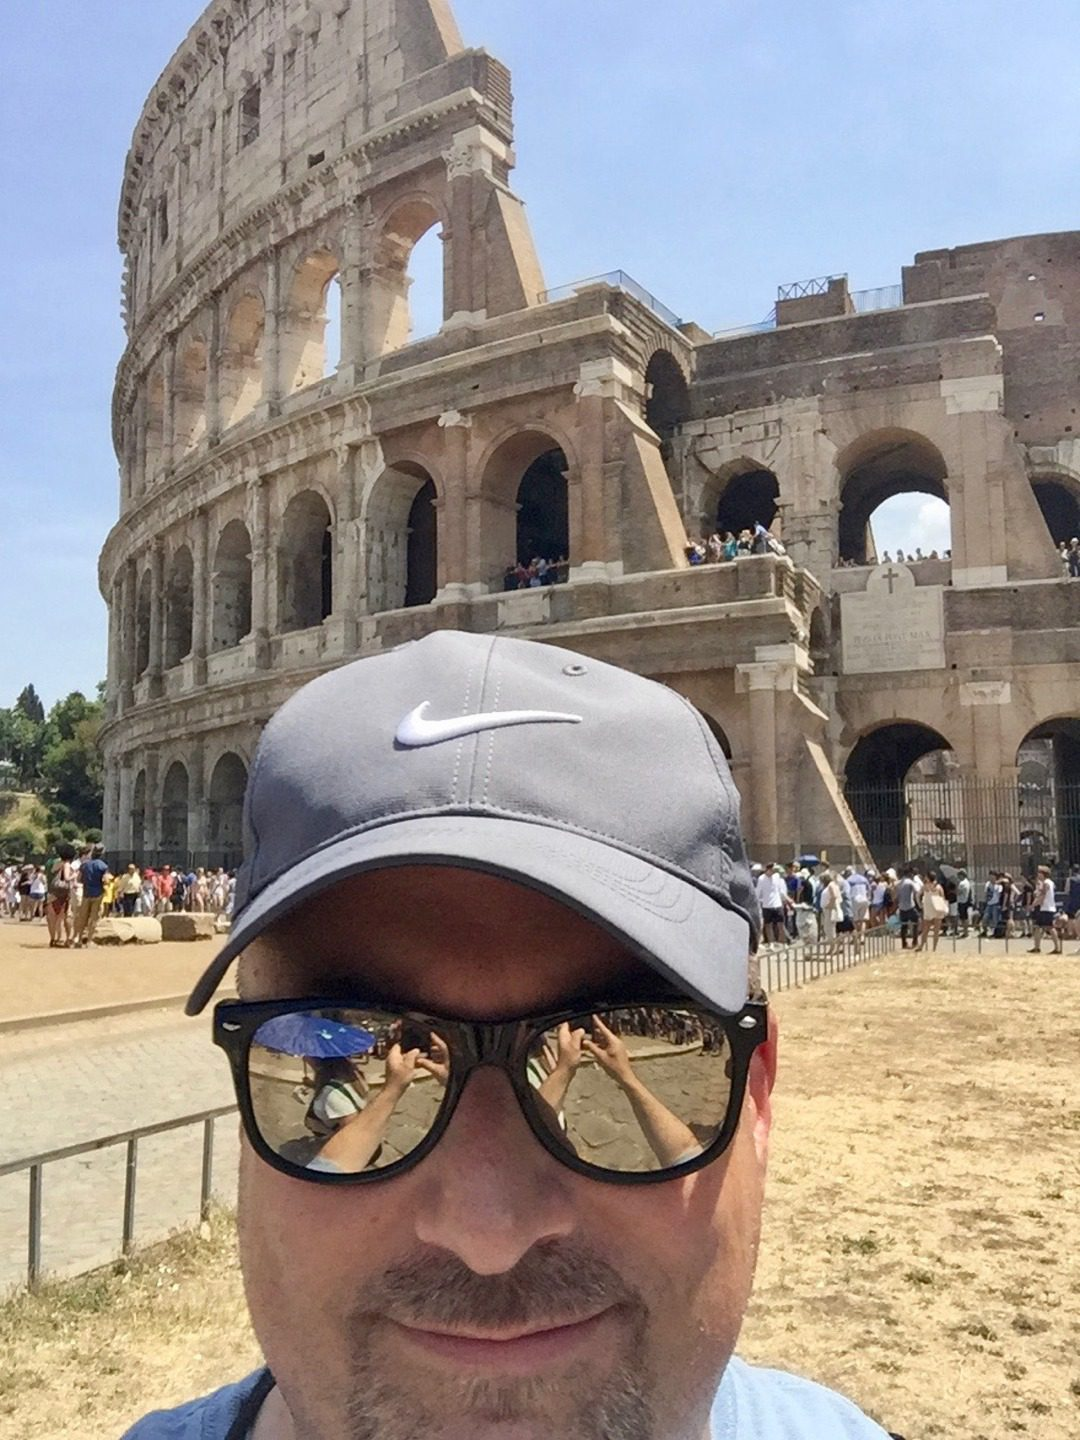 Teacher travel grants for History and Social Studies educators: 6 funded global education programs! In front of the Colosseum in Rome, Italy.